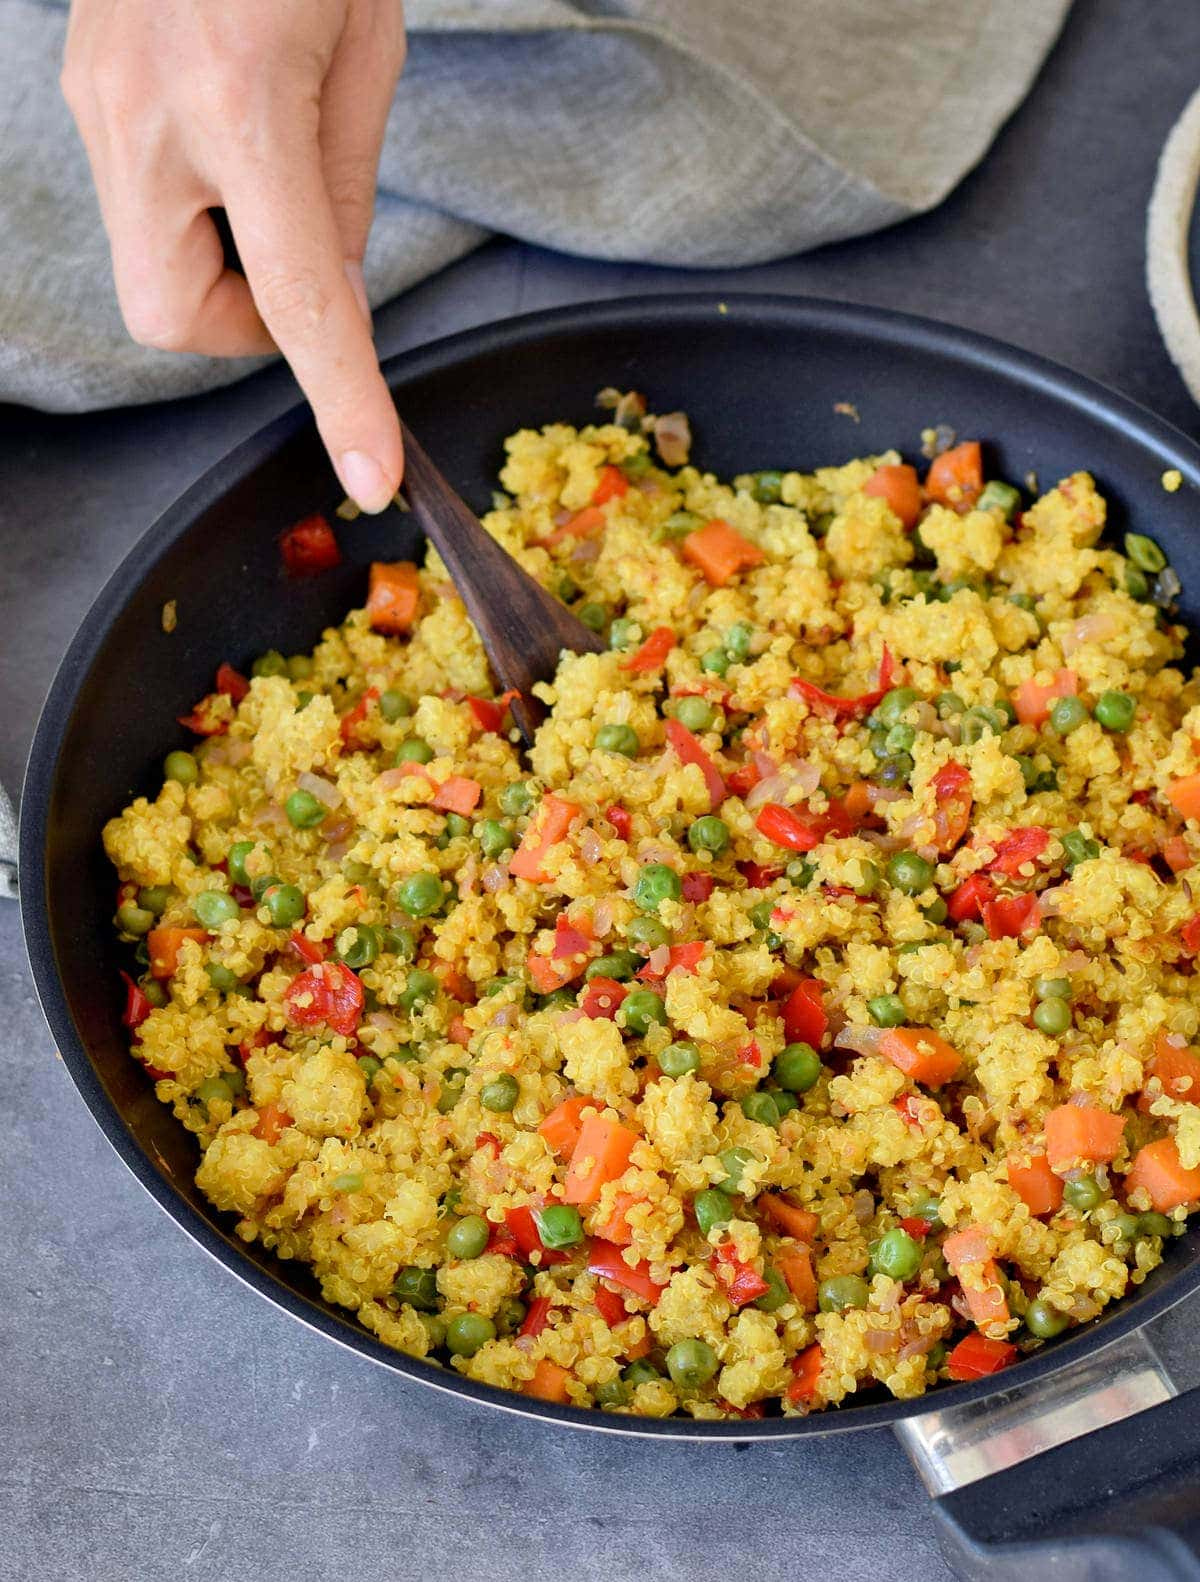 quinoa pilaf with veggies in a black pan